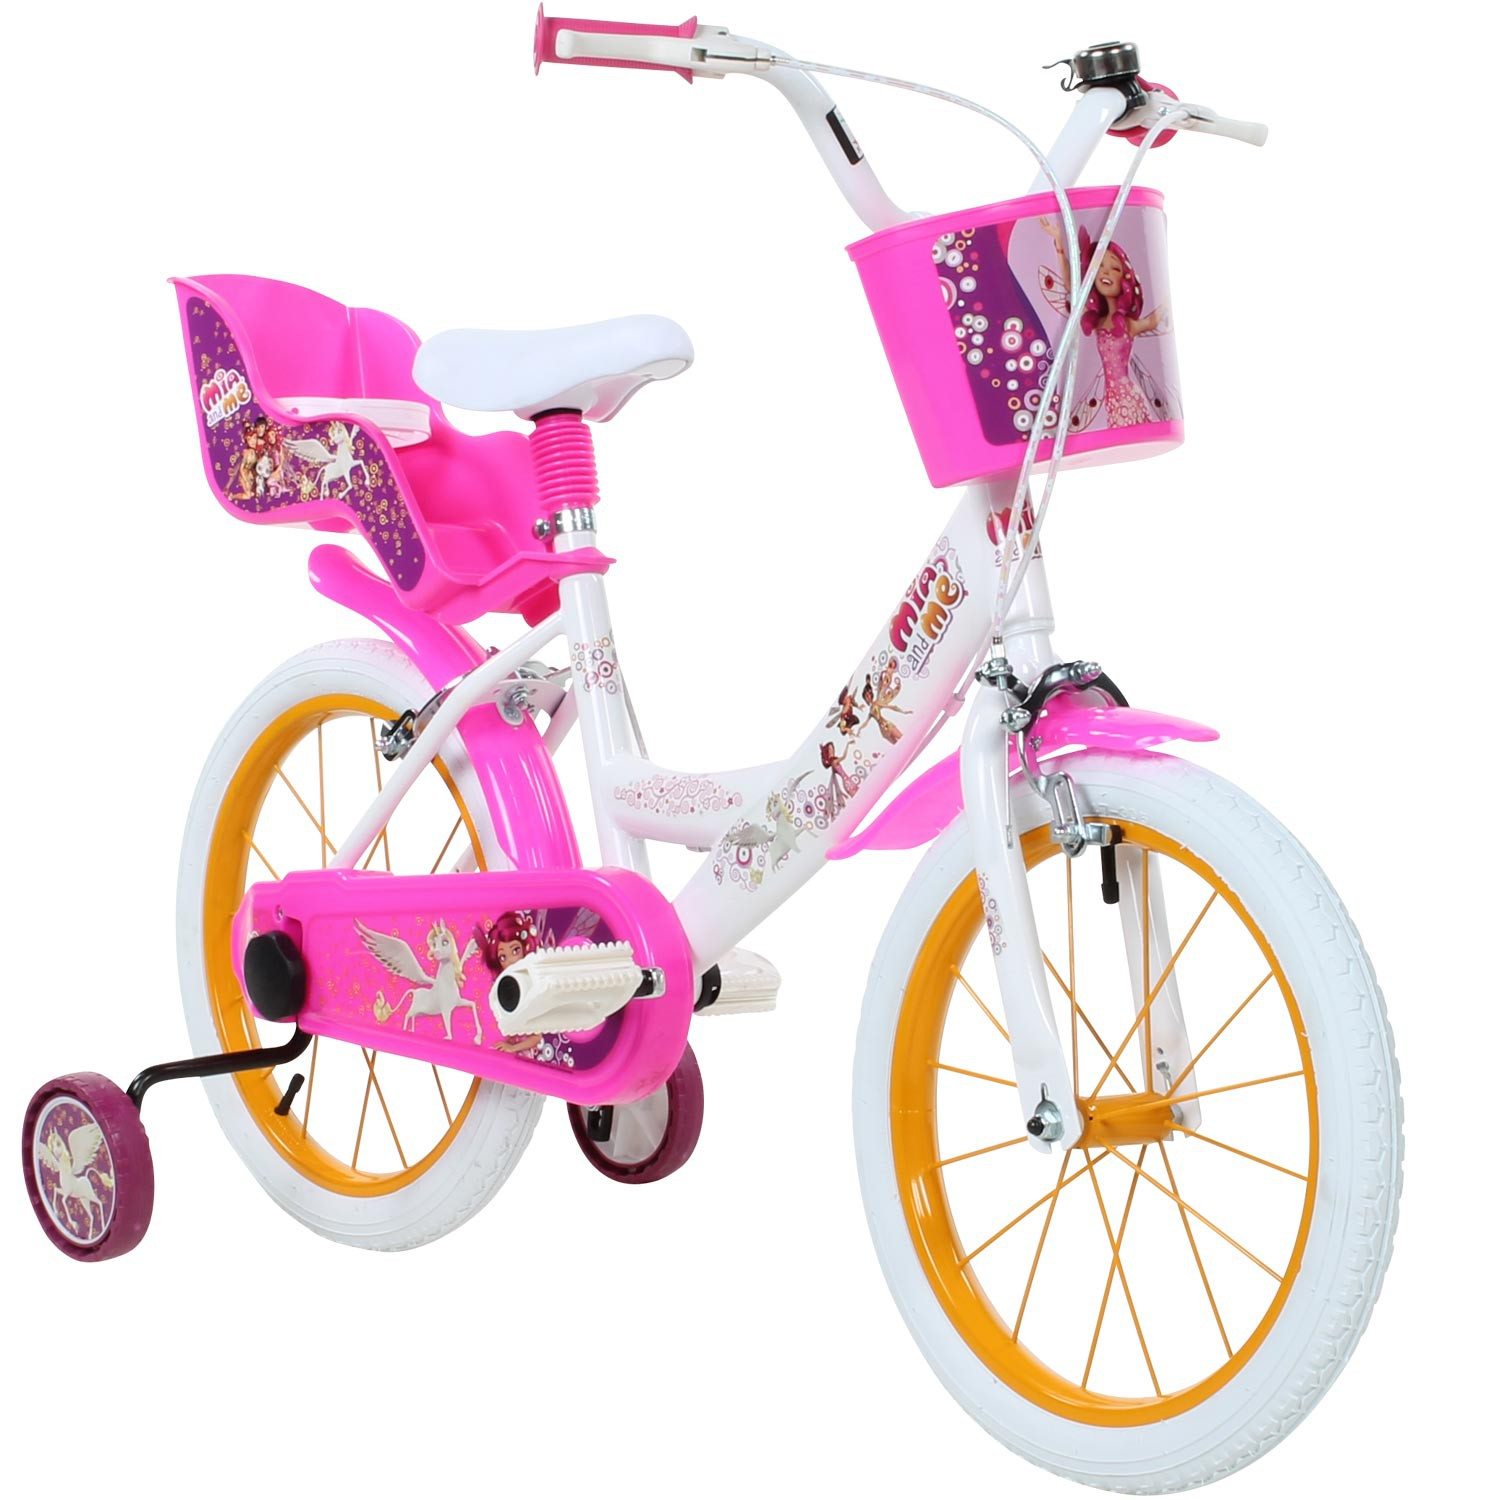 mia and me 16 zoll kinderfahrrad kinder anf nger fahrrad. Black Bedroom Furniture Sets. Home Design Ideas